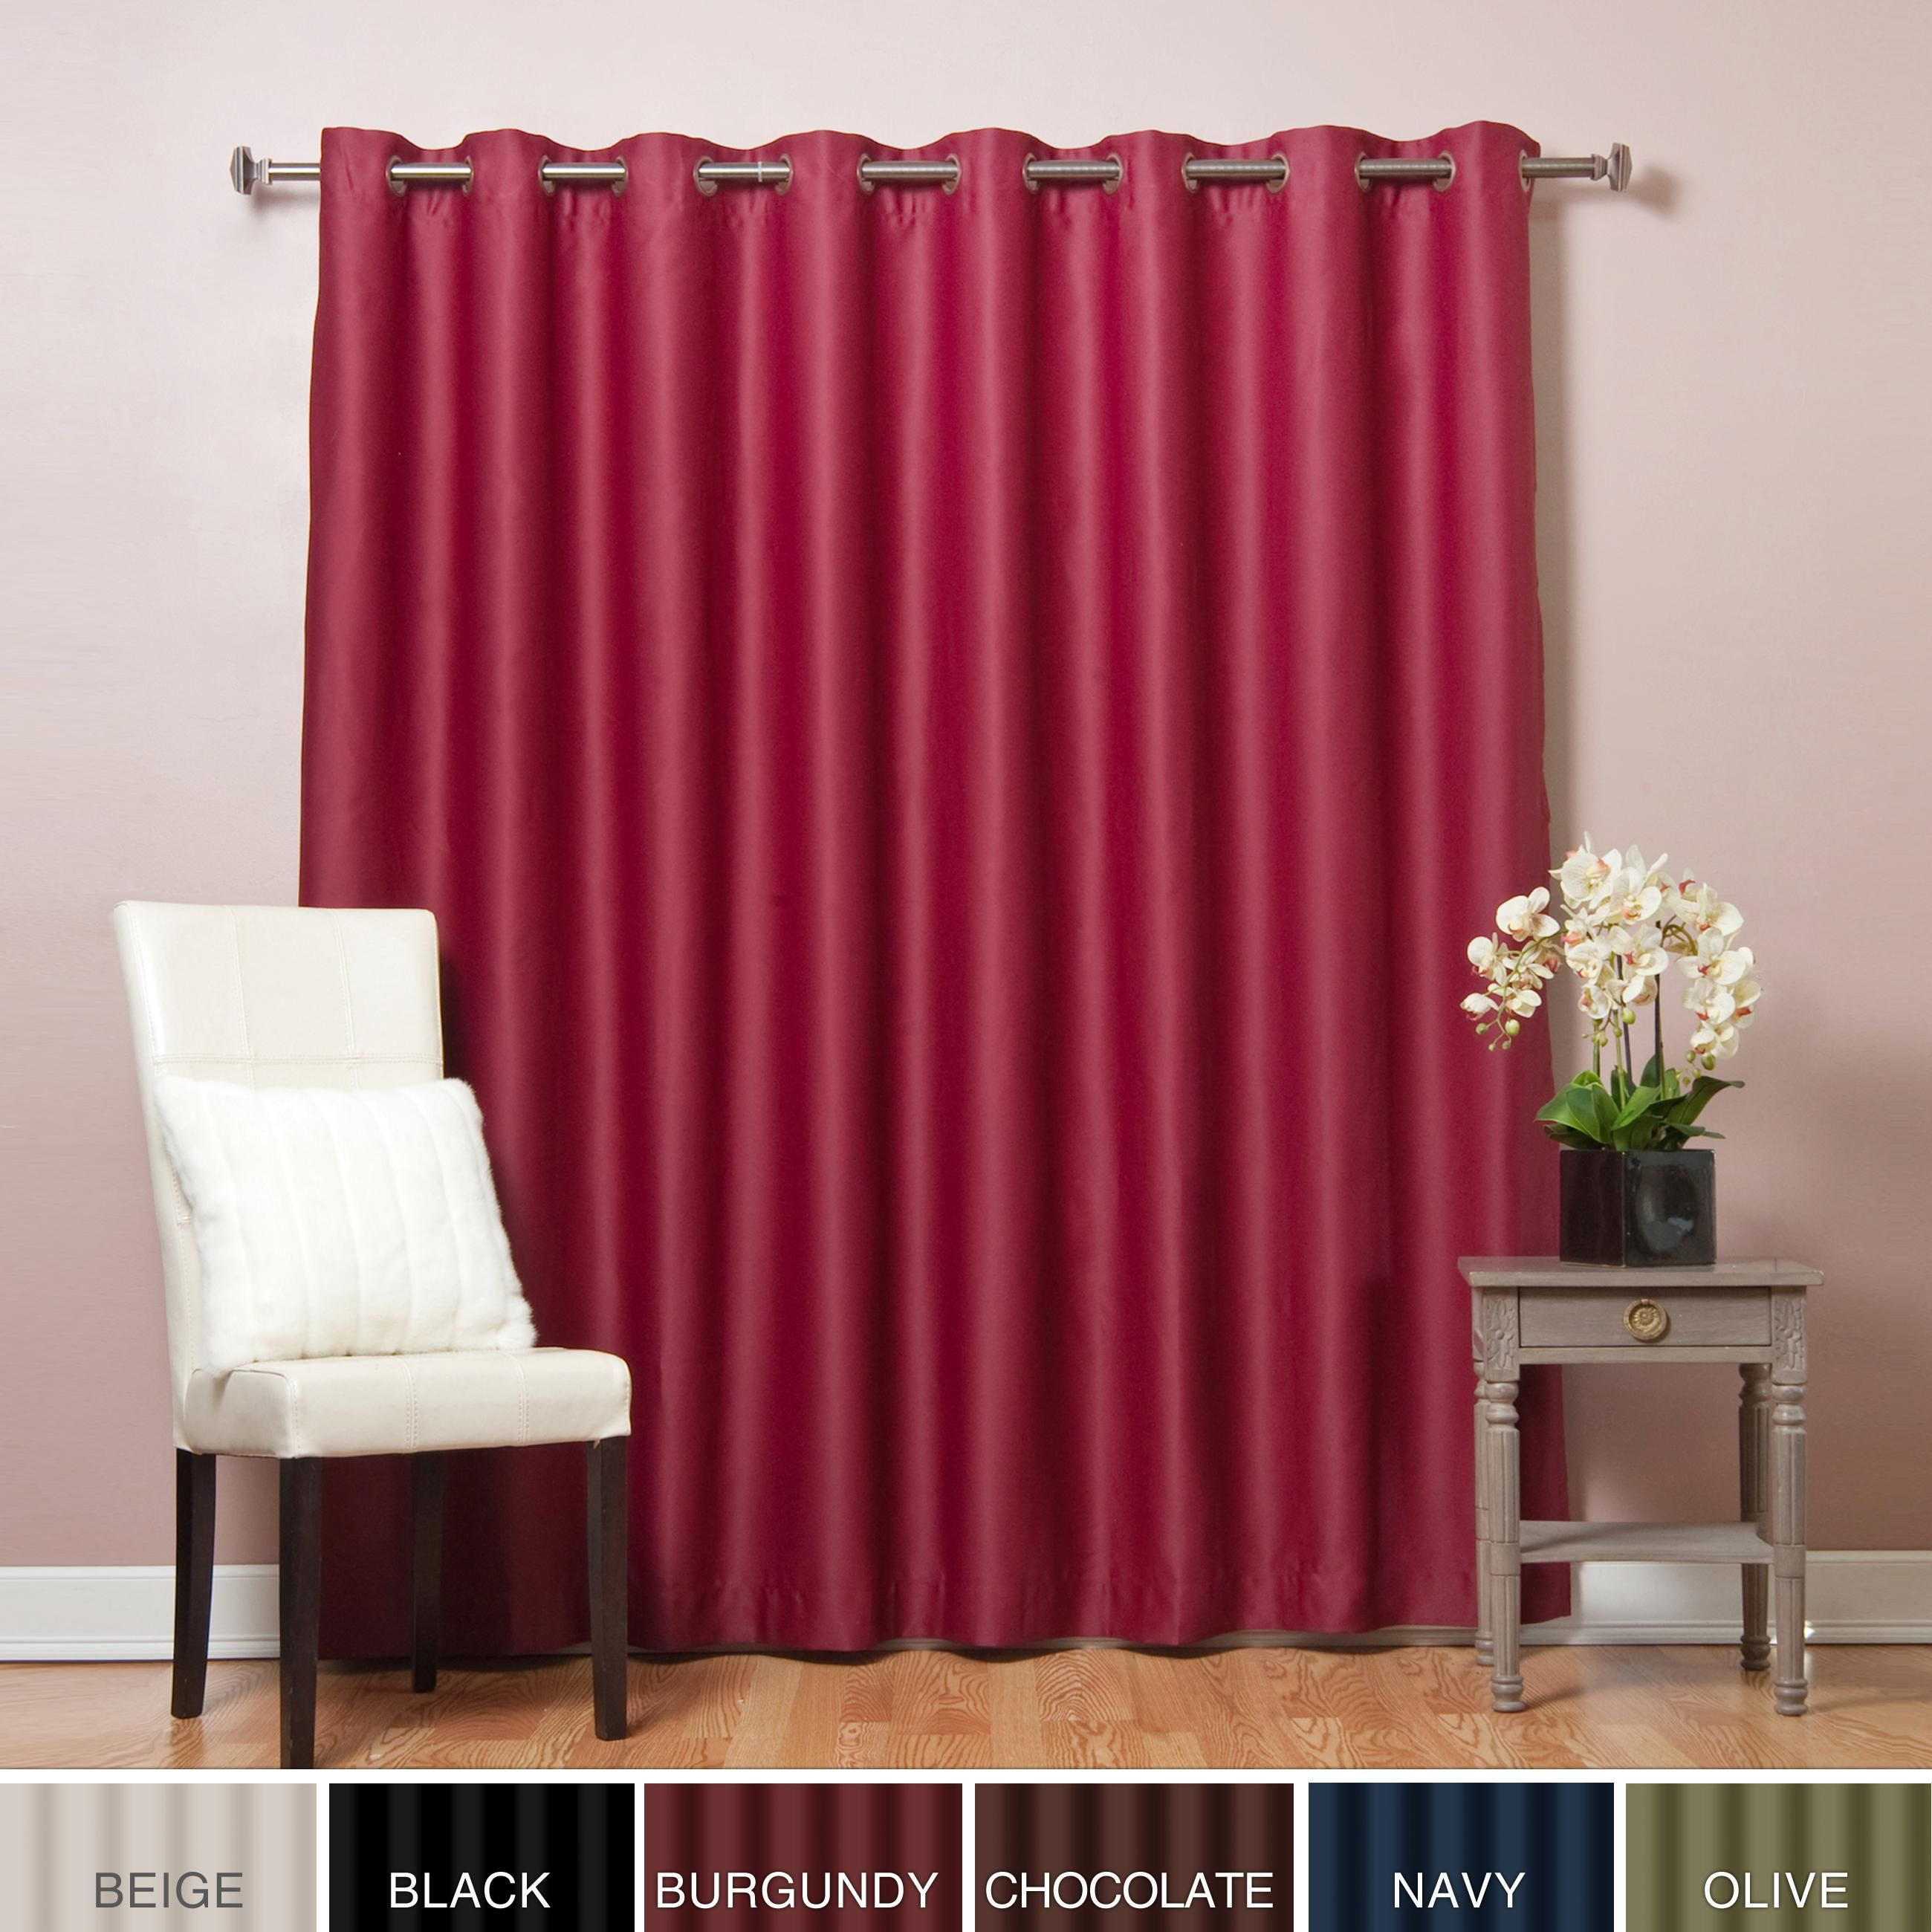 Aurora Home Extra Wide Thermal 100 X 84 Inch Blackout Curtain